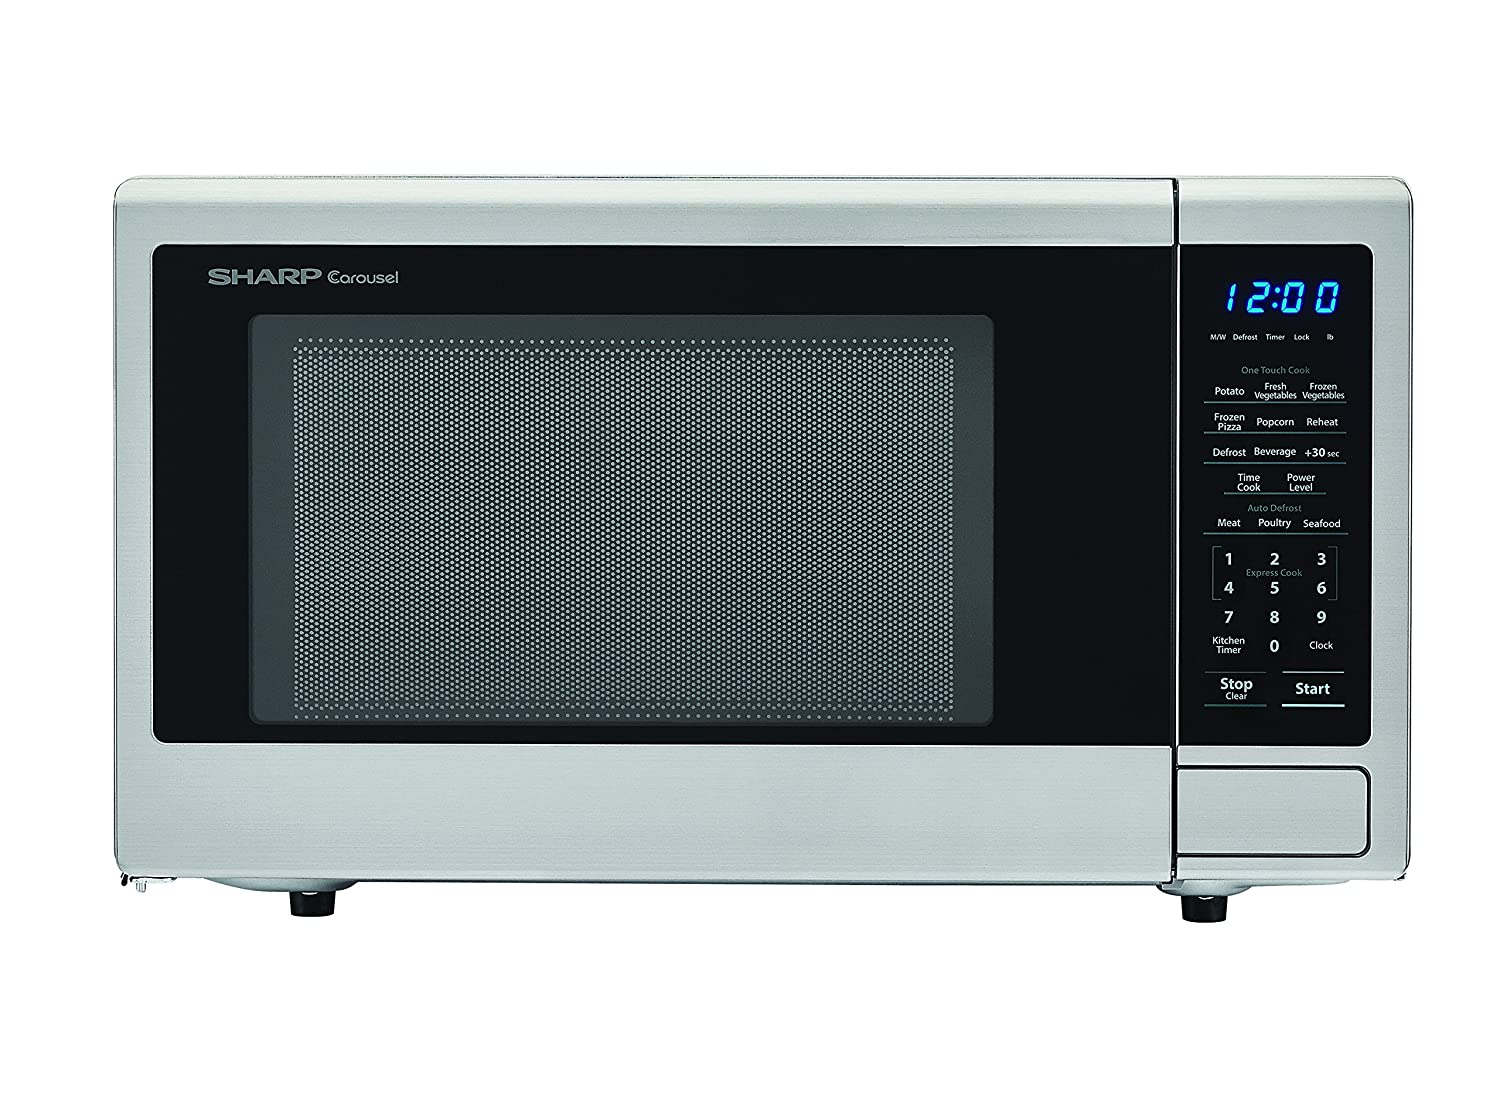 Sharp Microwaves ZSMC1132CS Sharp 1,000W Countertop Microwave Oven, 1.1 Cubic Foot, Stainless Steel